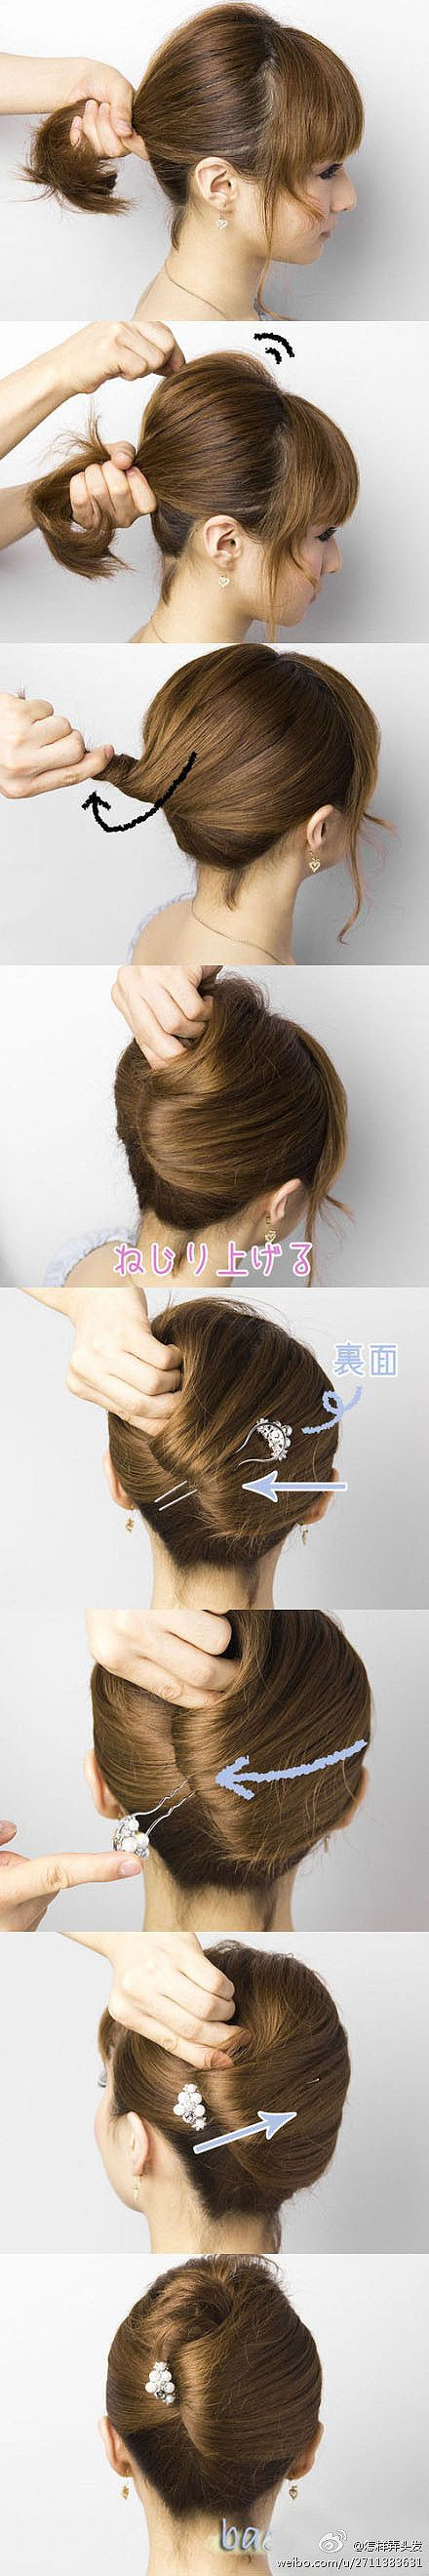 #tutorial for mid-length #hair